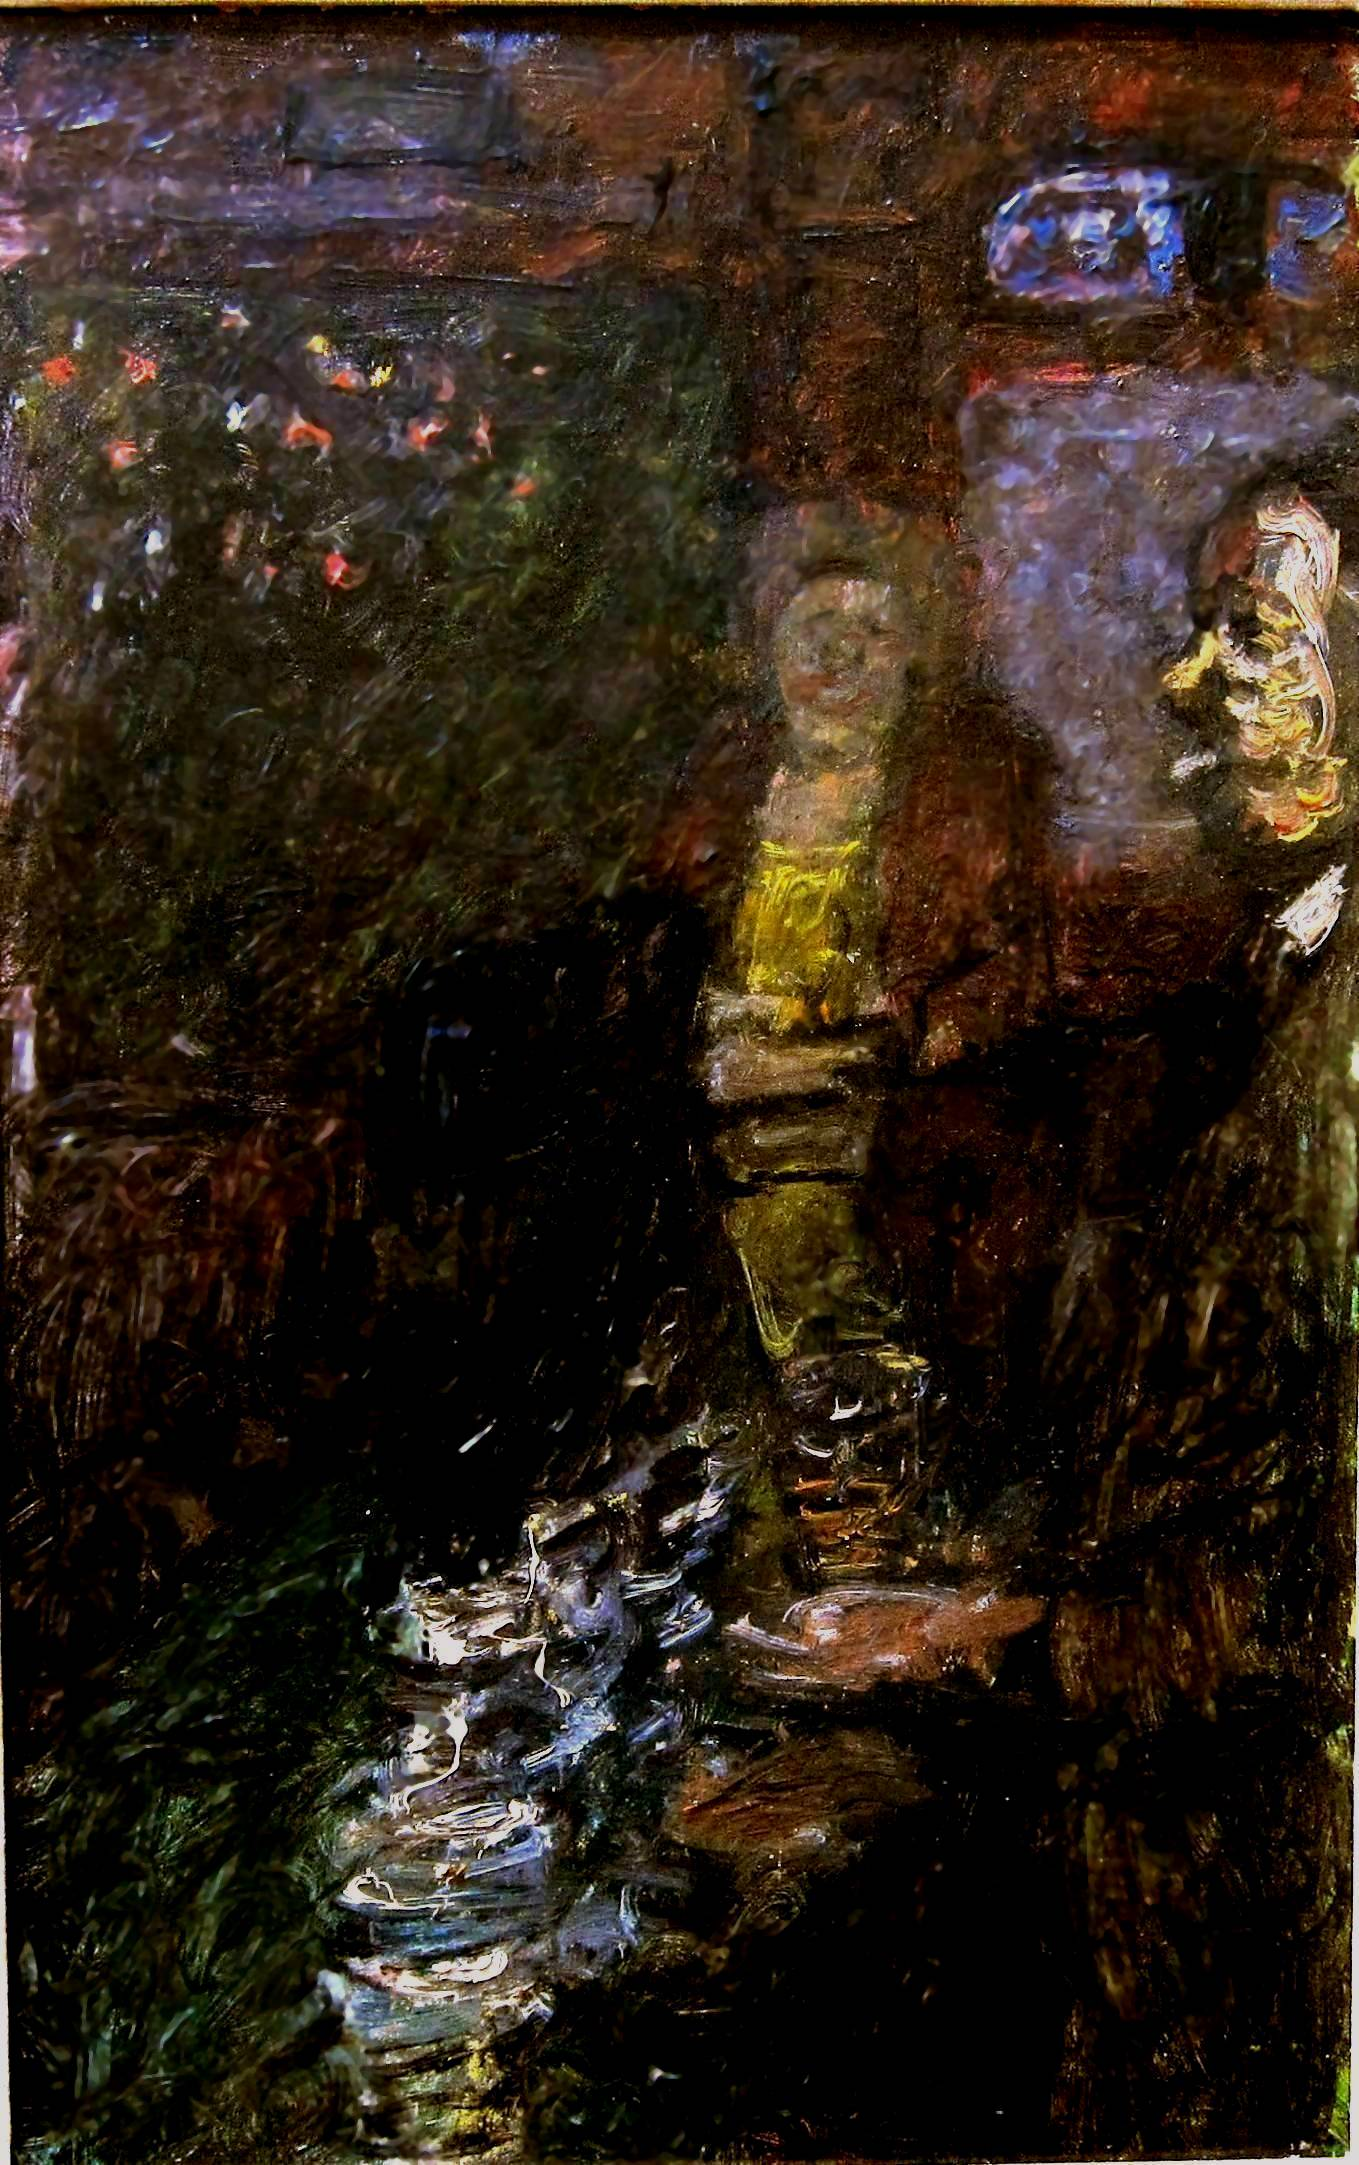 RUSKIN SPEAR, R.A. [1911-90]. In the Hop Poles. Oil on board. Signed and titled on a label on the